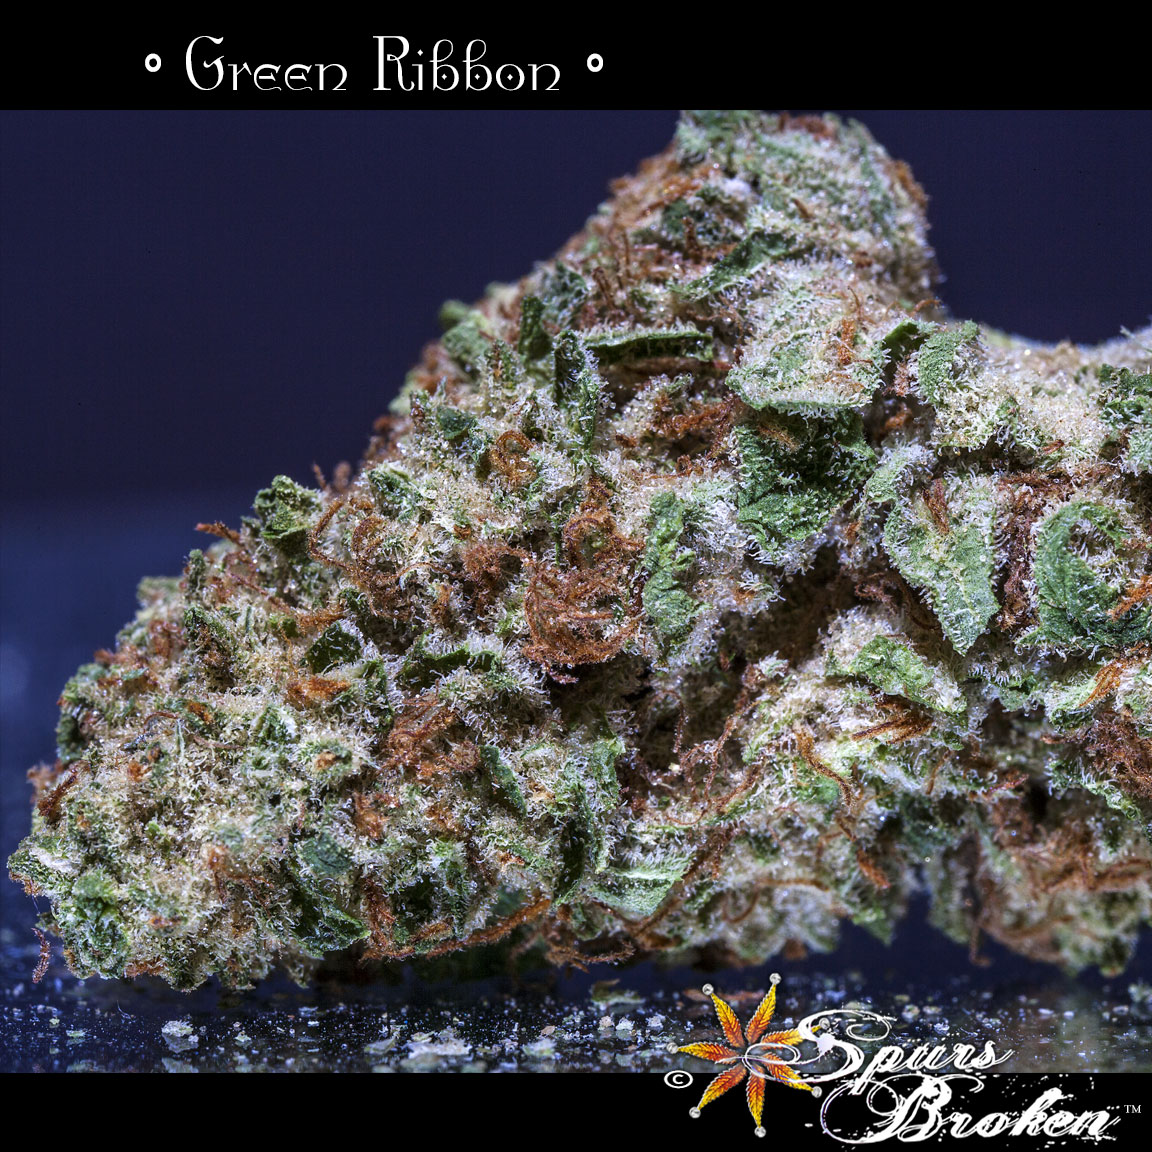 Green Ribbon -Cannabis Macro Photography by Spurs Broken (Robert R. Sanders)